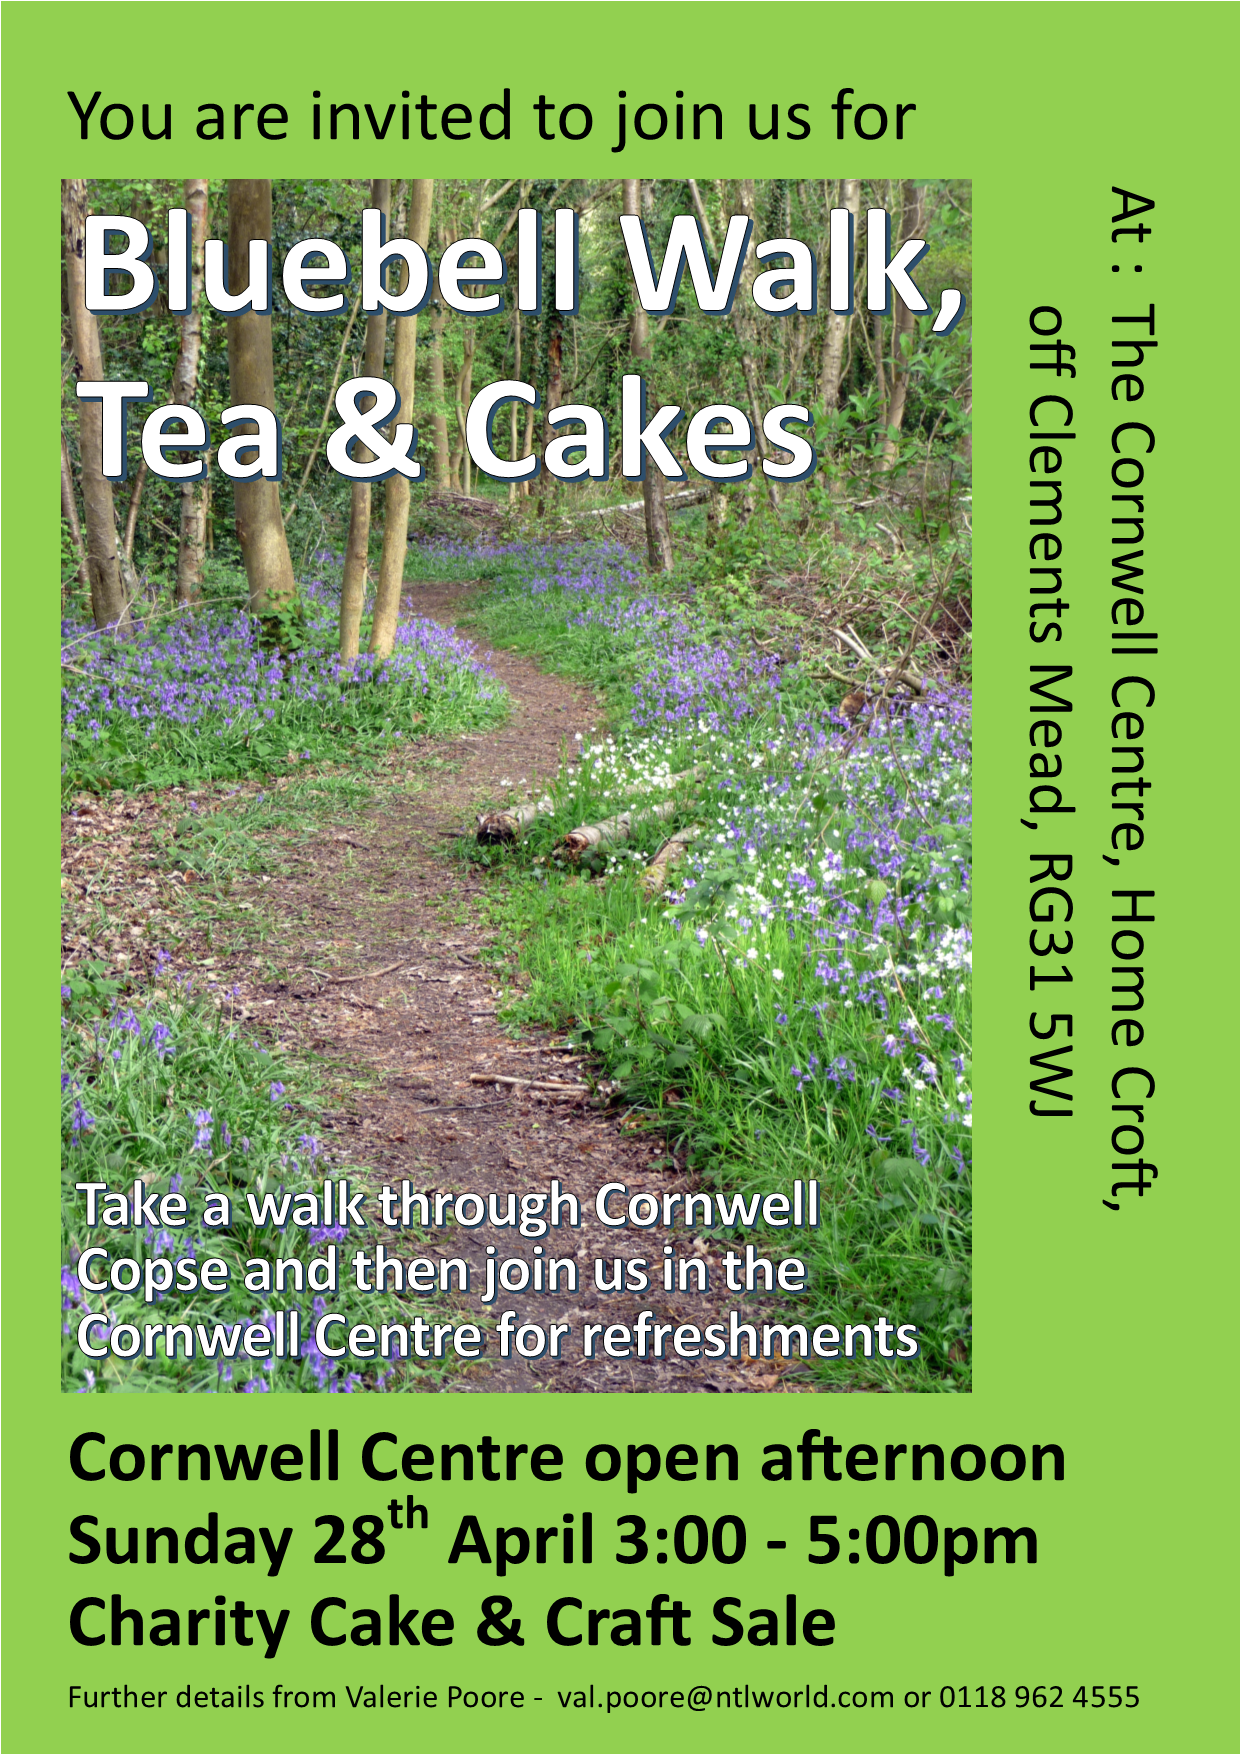 Bluebell Walk, Tea & Cakes